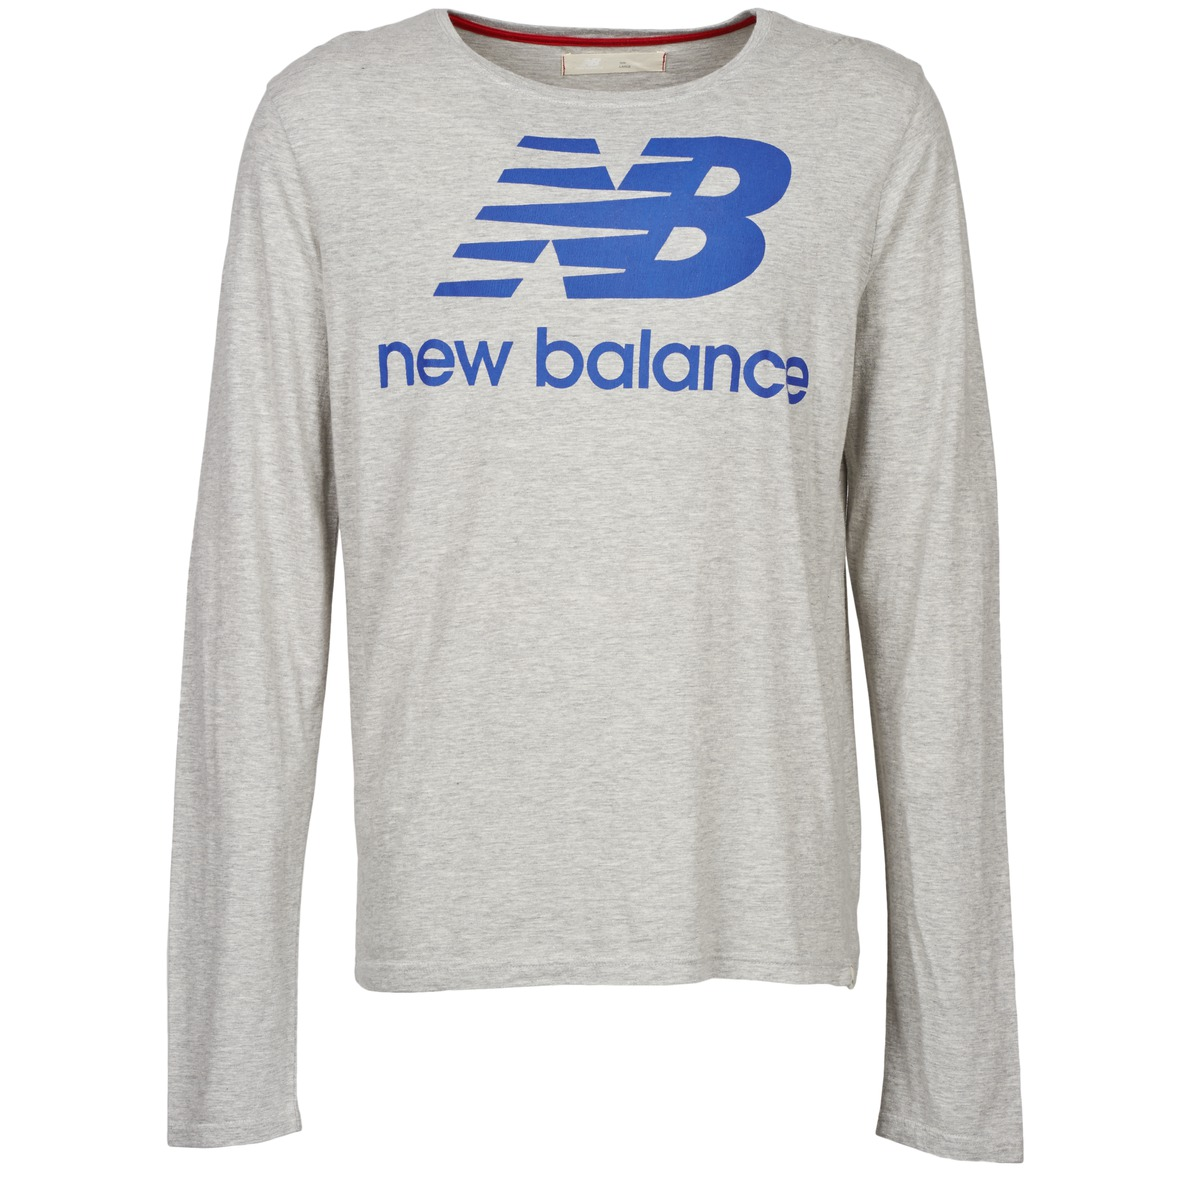 New Balance NBSS1403 LONG SLEEVE TEE Grau